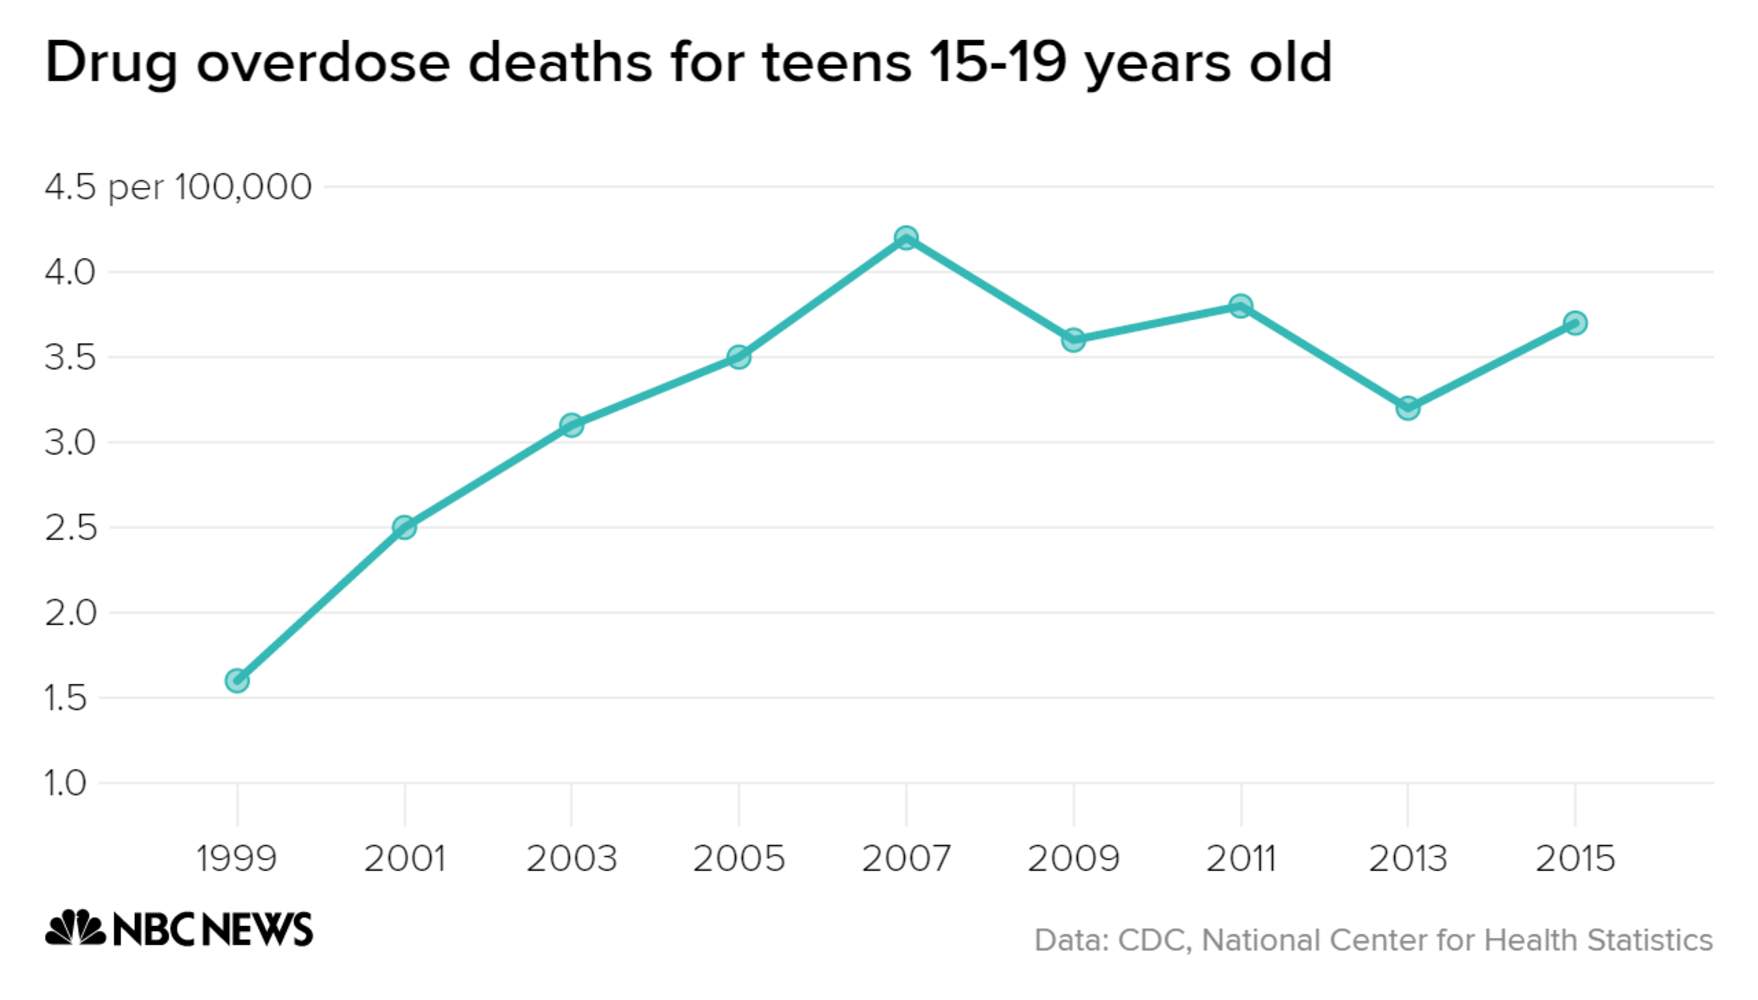 Teenage deaths rise again, newer drugs could be root cause